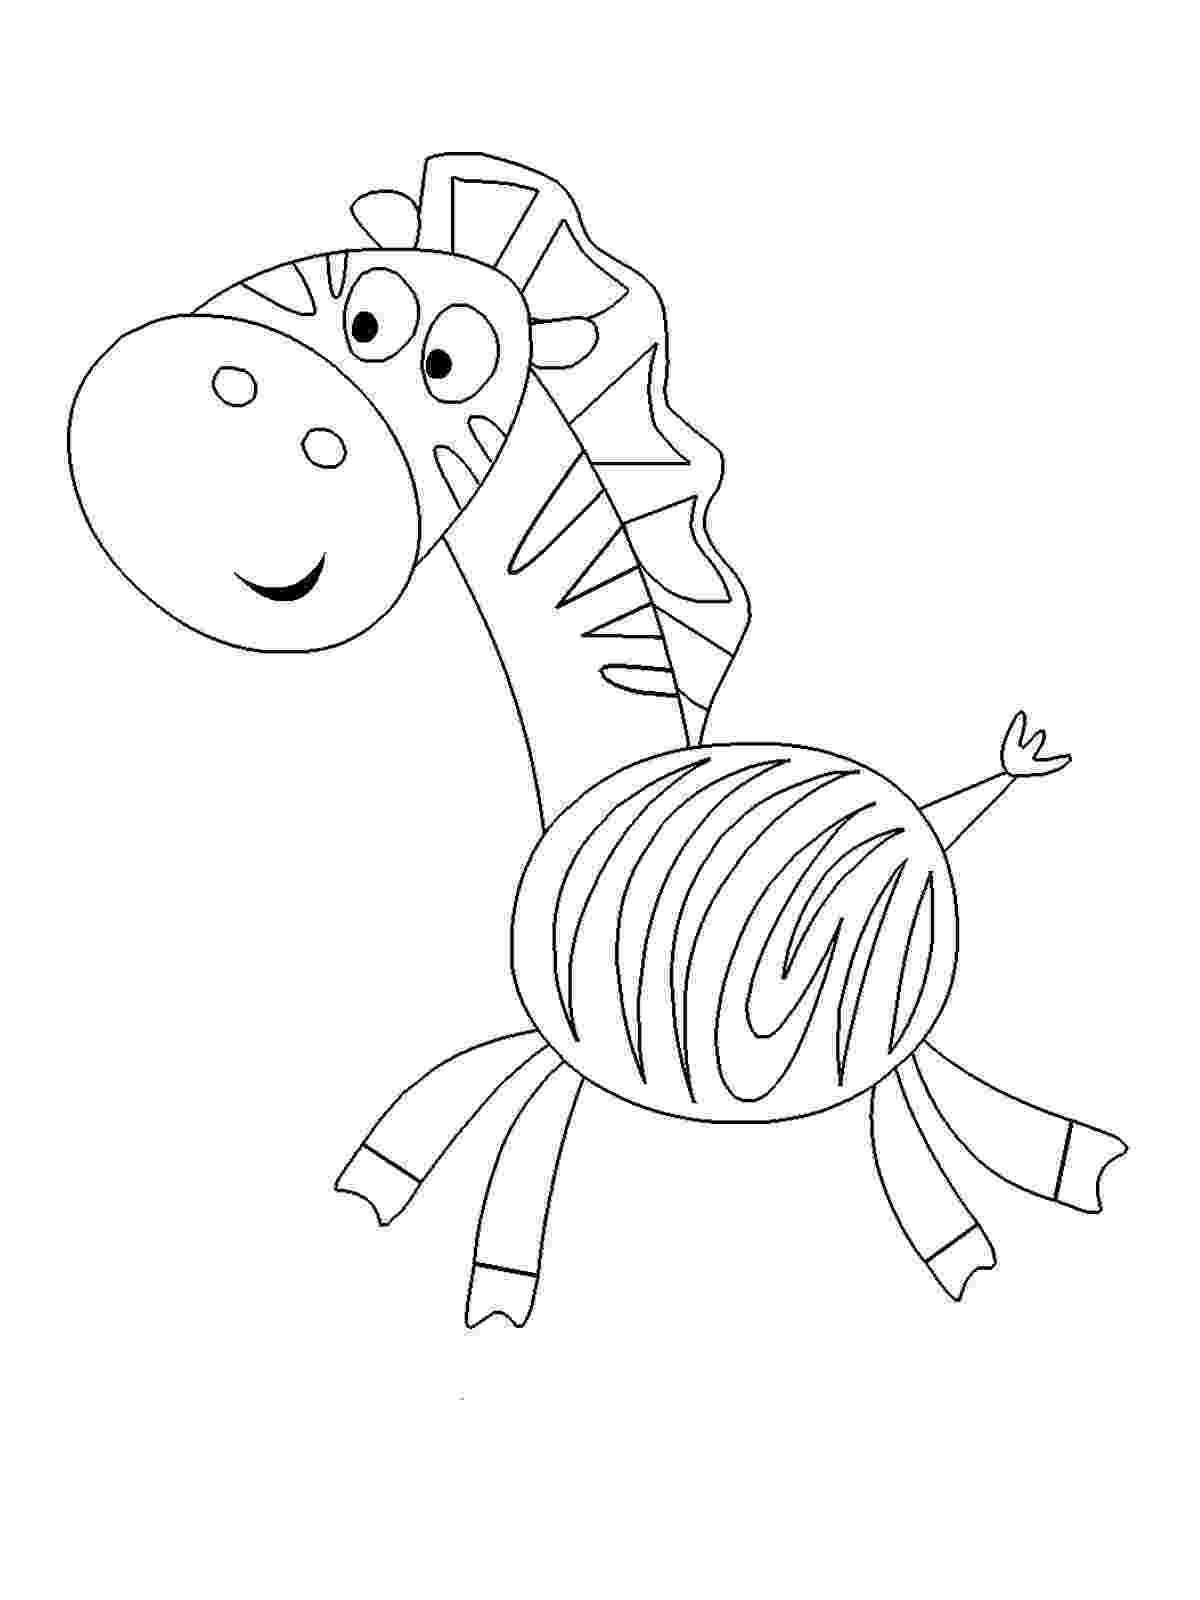 free printable coloring caillou coloring pages best coloring pages for kids free printable coloring